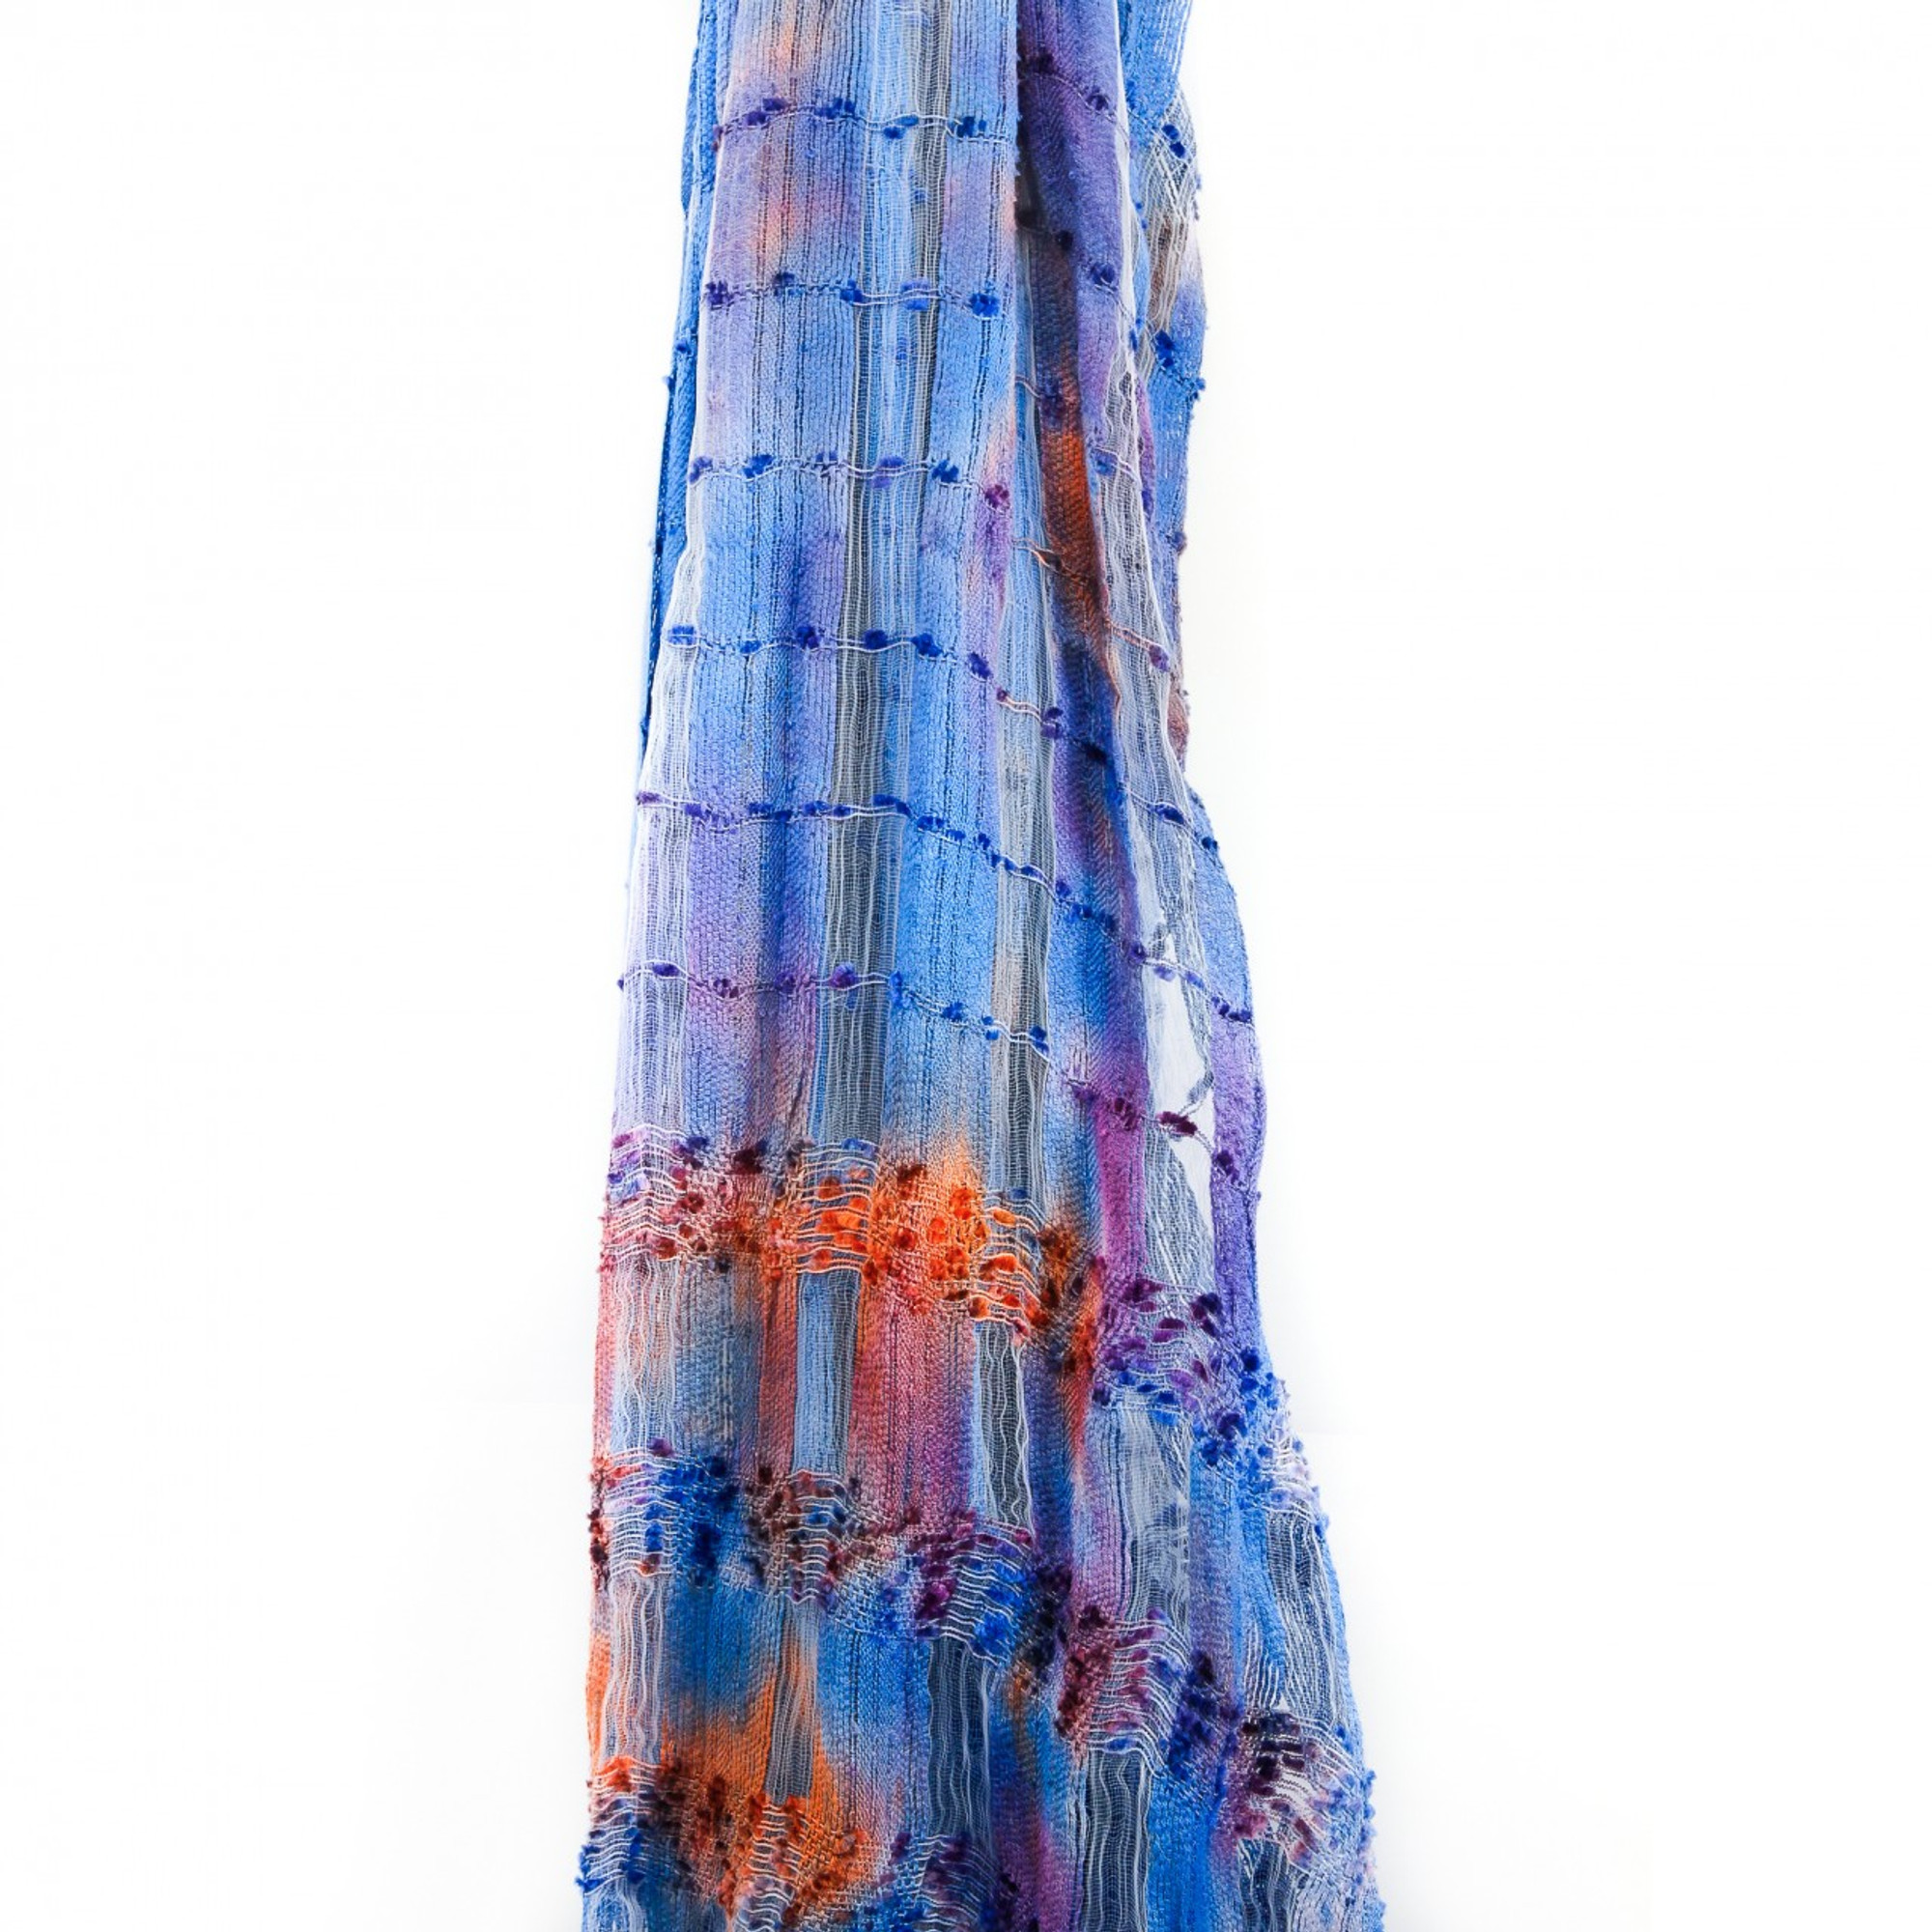 Takas Silk Scarf | Barcelona Nights | Silk Scarves from Spain